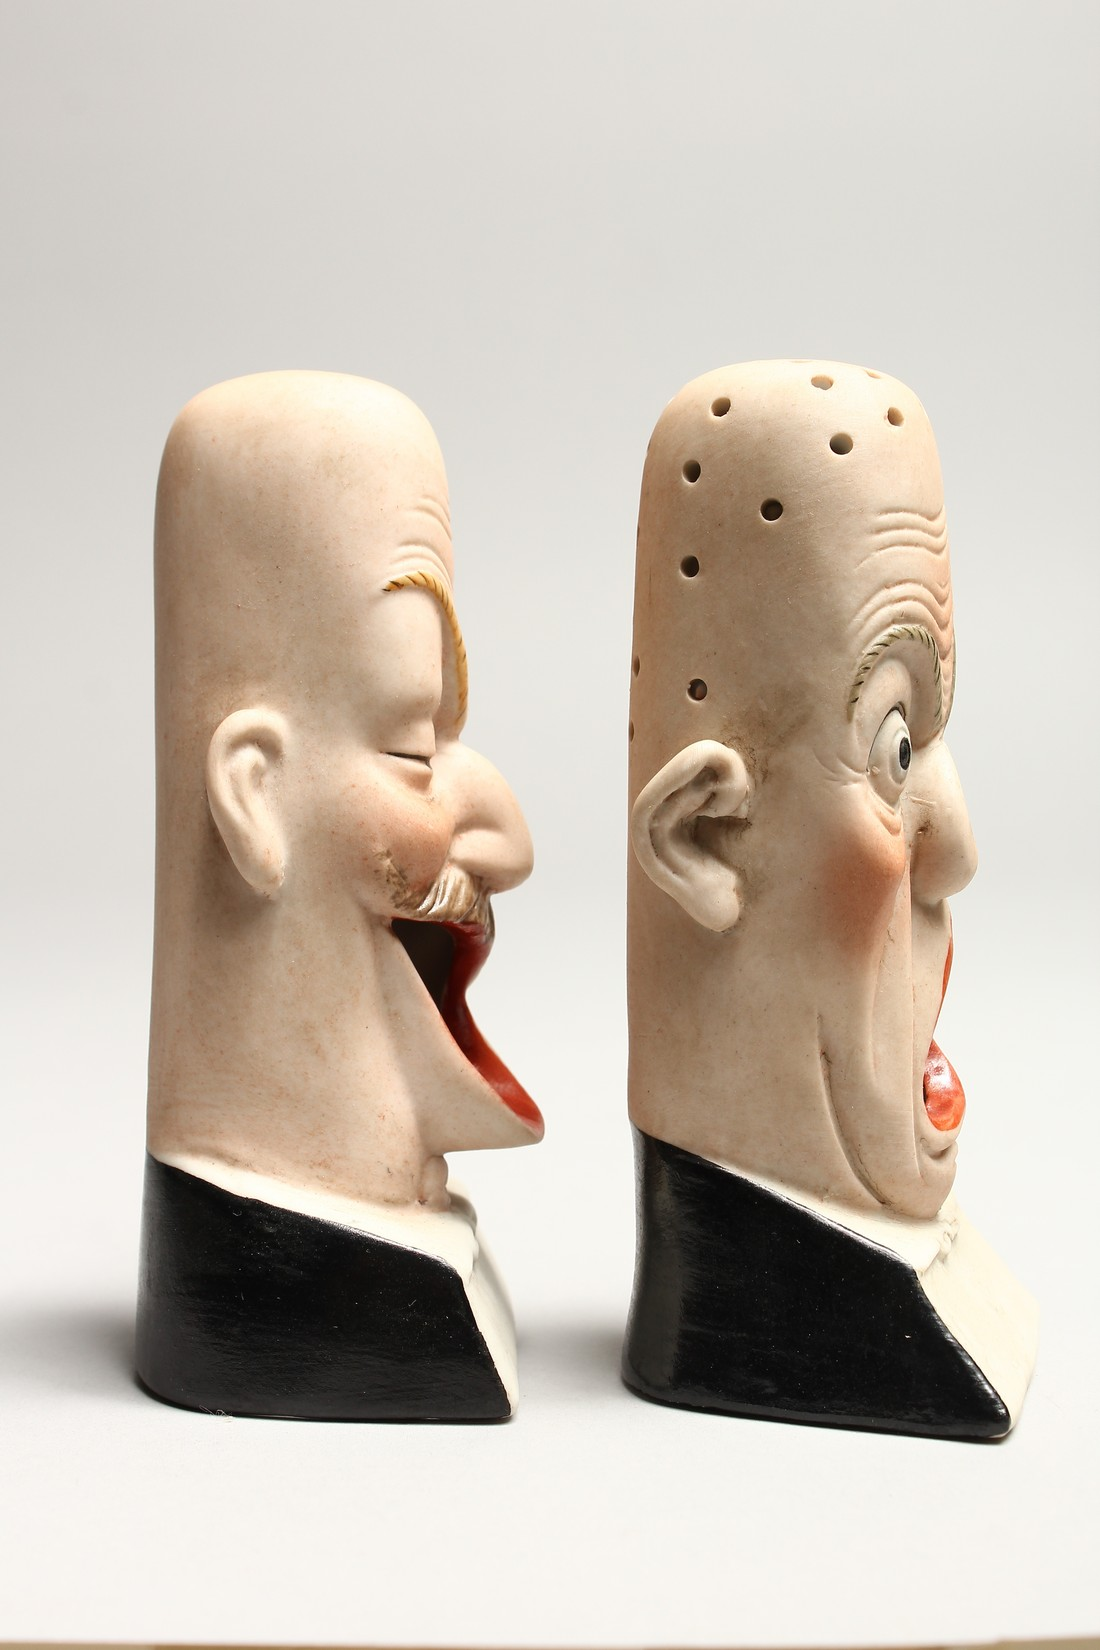 A PAIR OF POTTERY MEN'S HEADS ASHTRAYS. 5in high. - Image 4 of 5